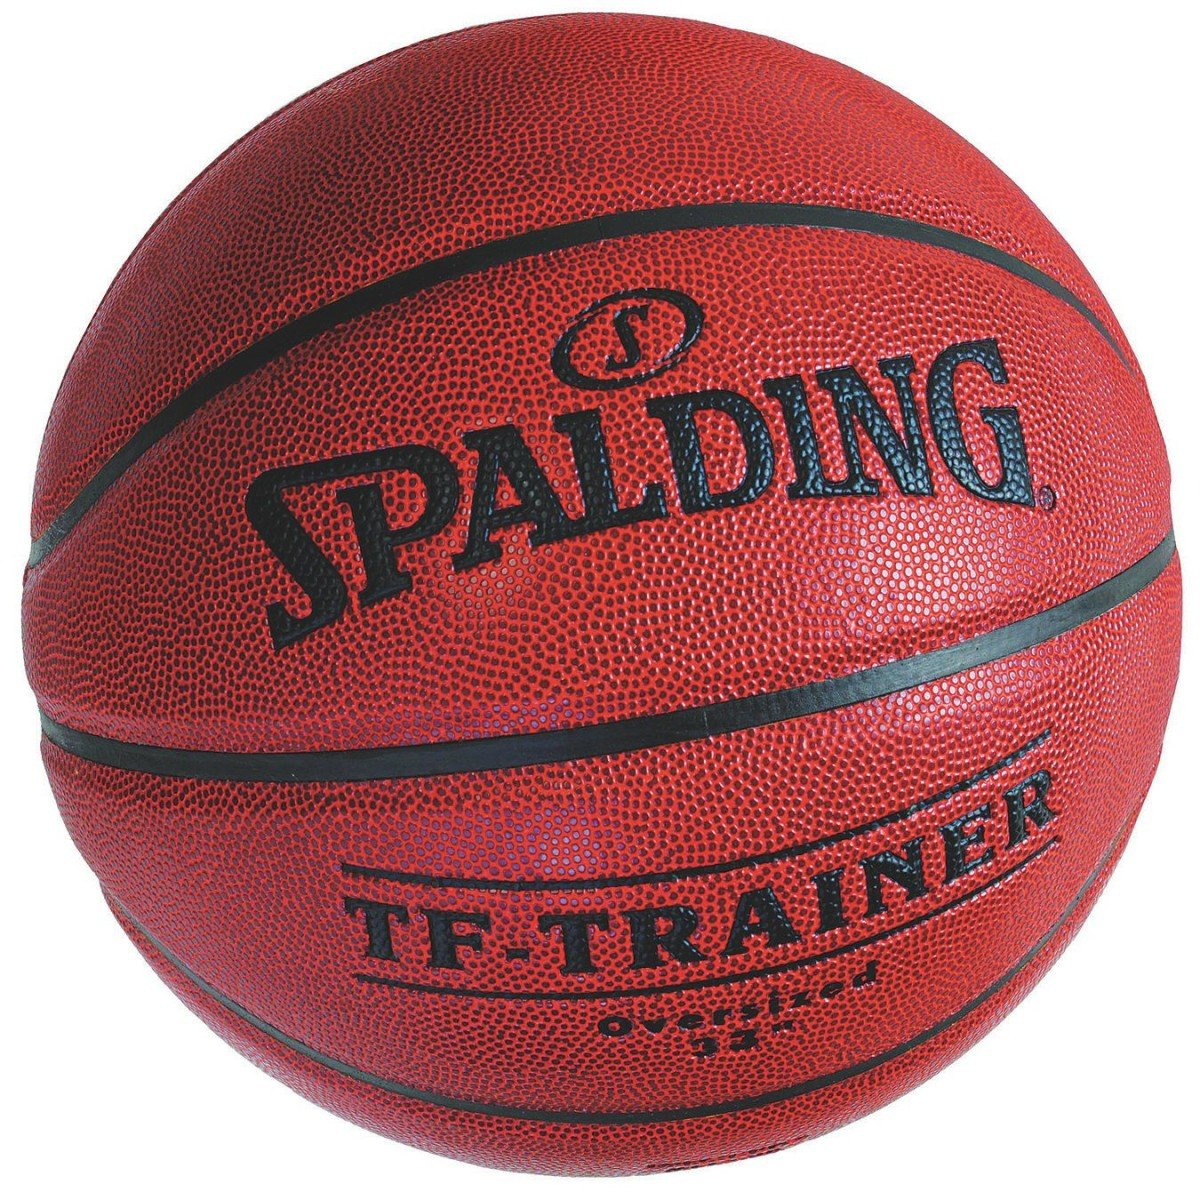 Spalding Oversized Trainer Ball-(33.0) 74265